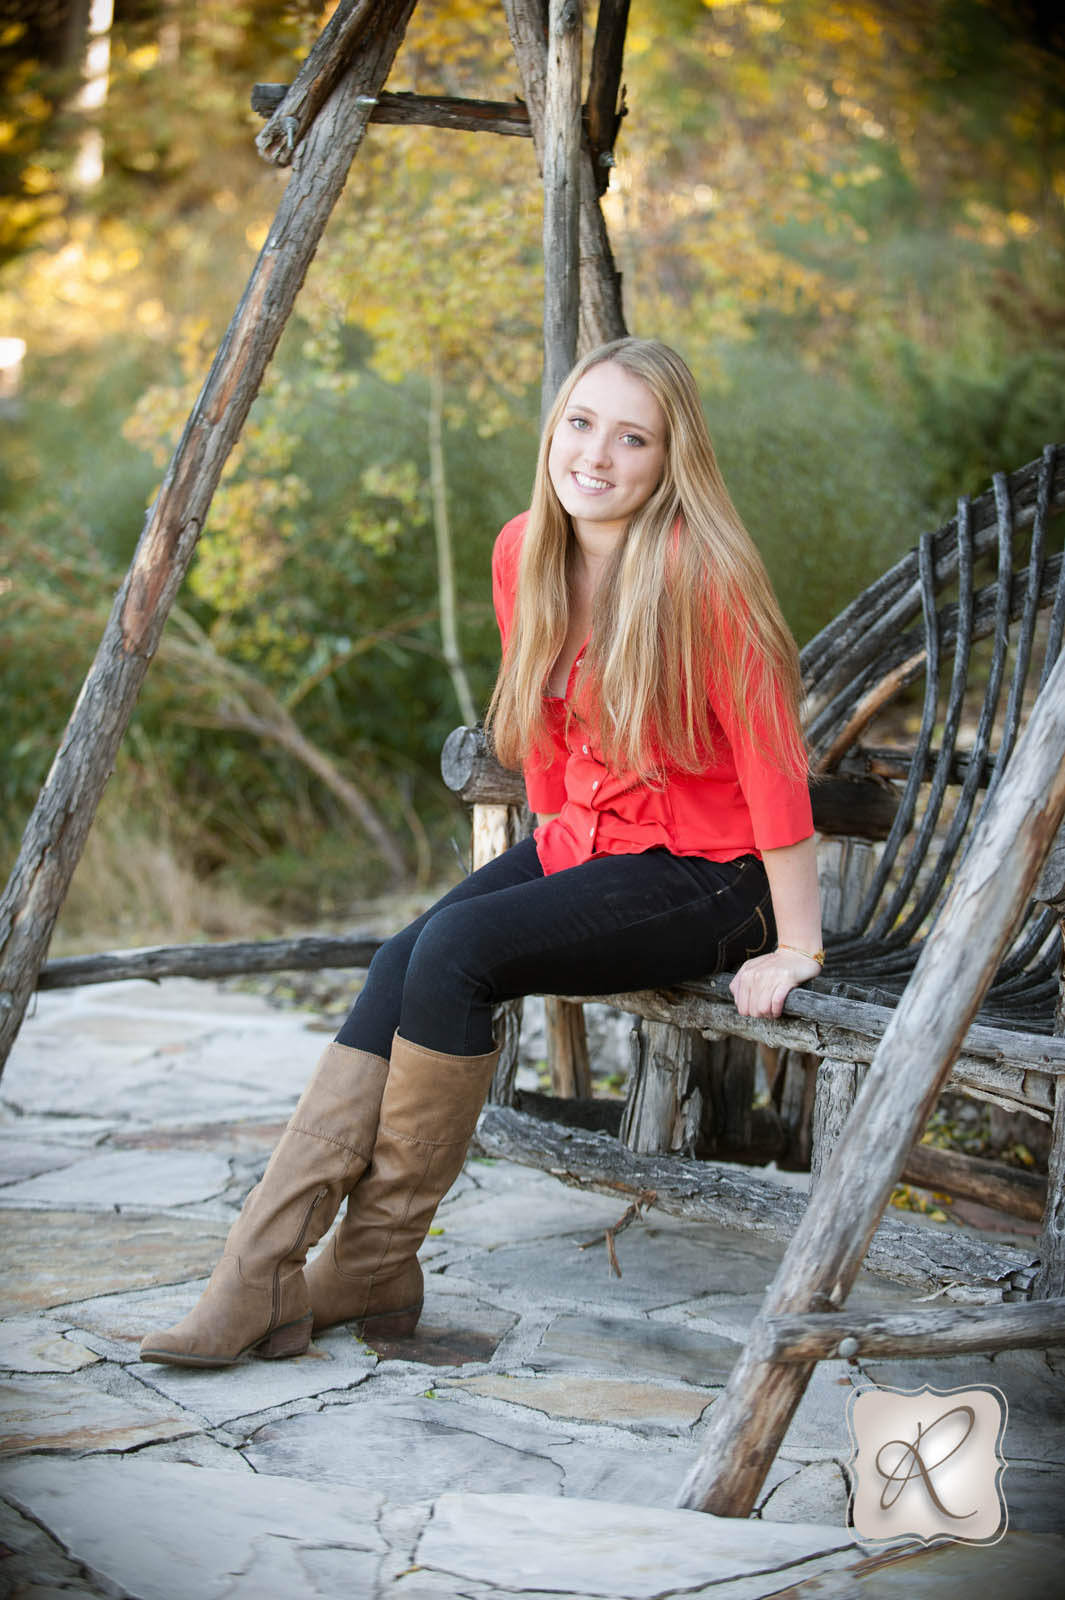 Carley's Fall Senior Portraits - Durango Wedding And